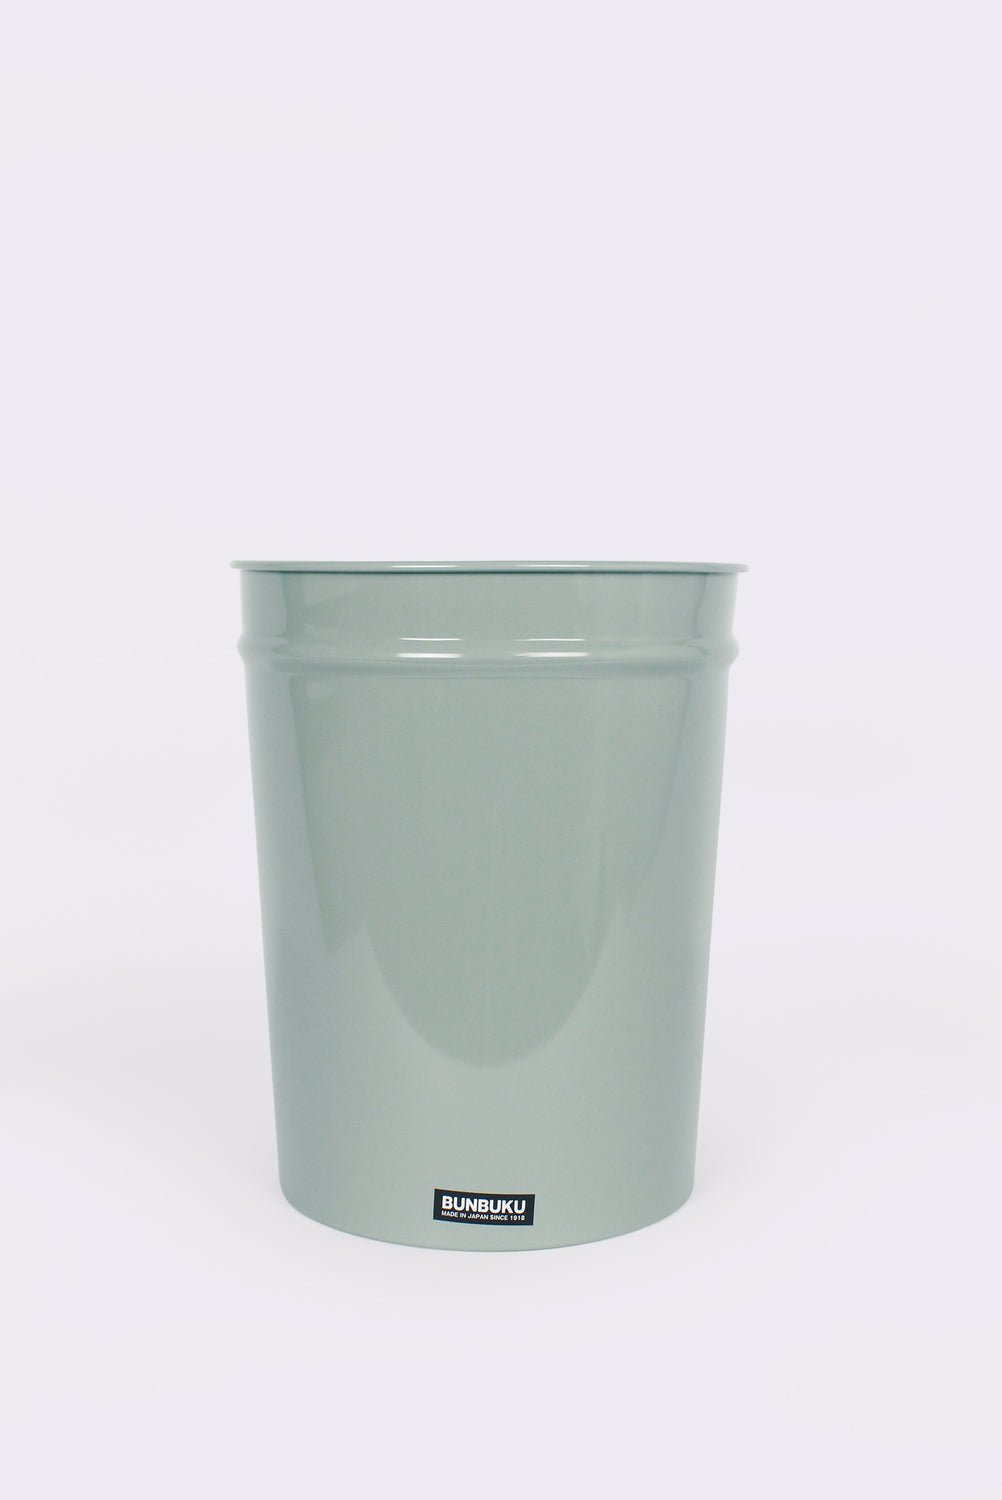 Short Tapered Waste Basket, Gray